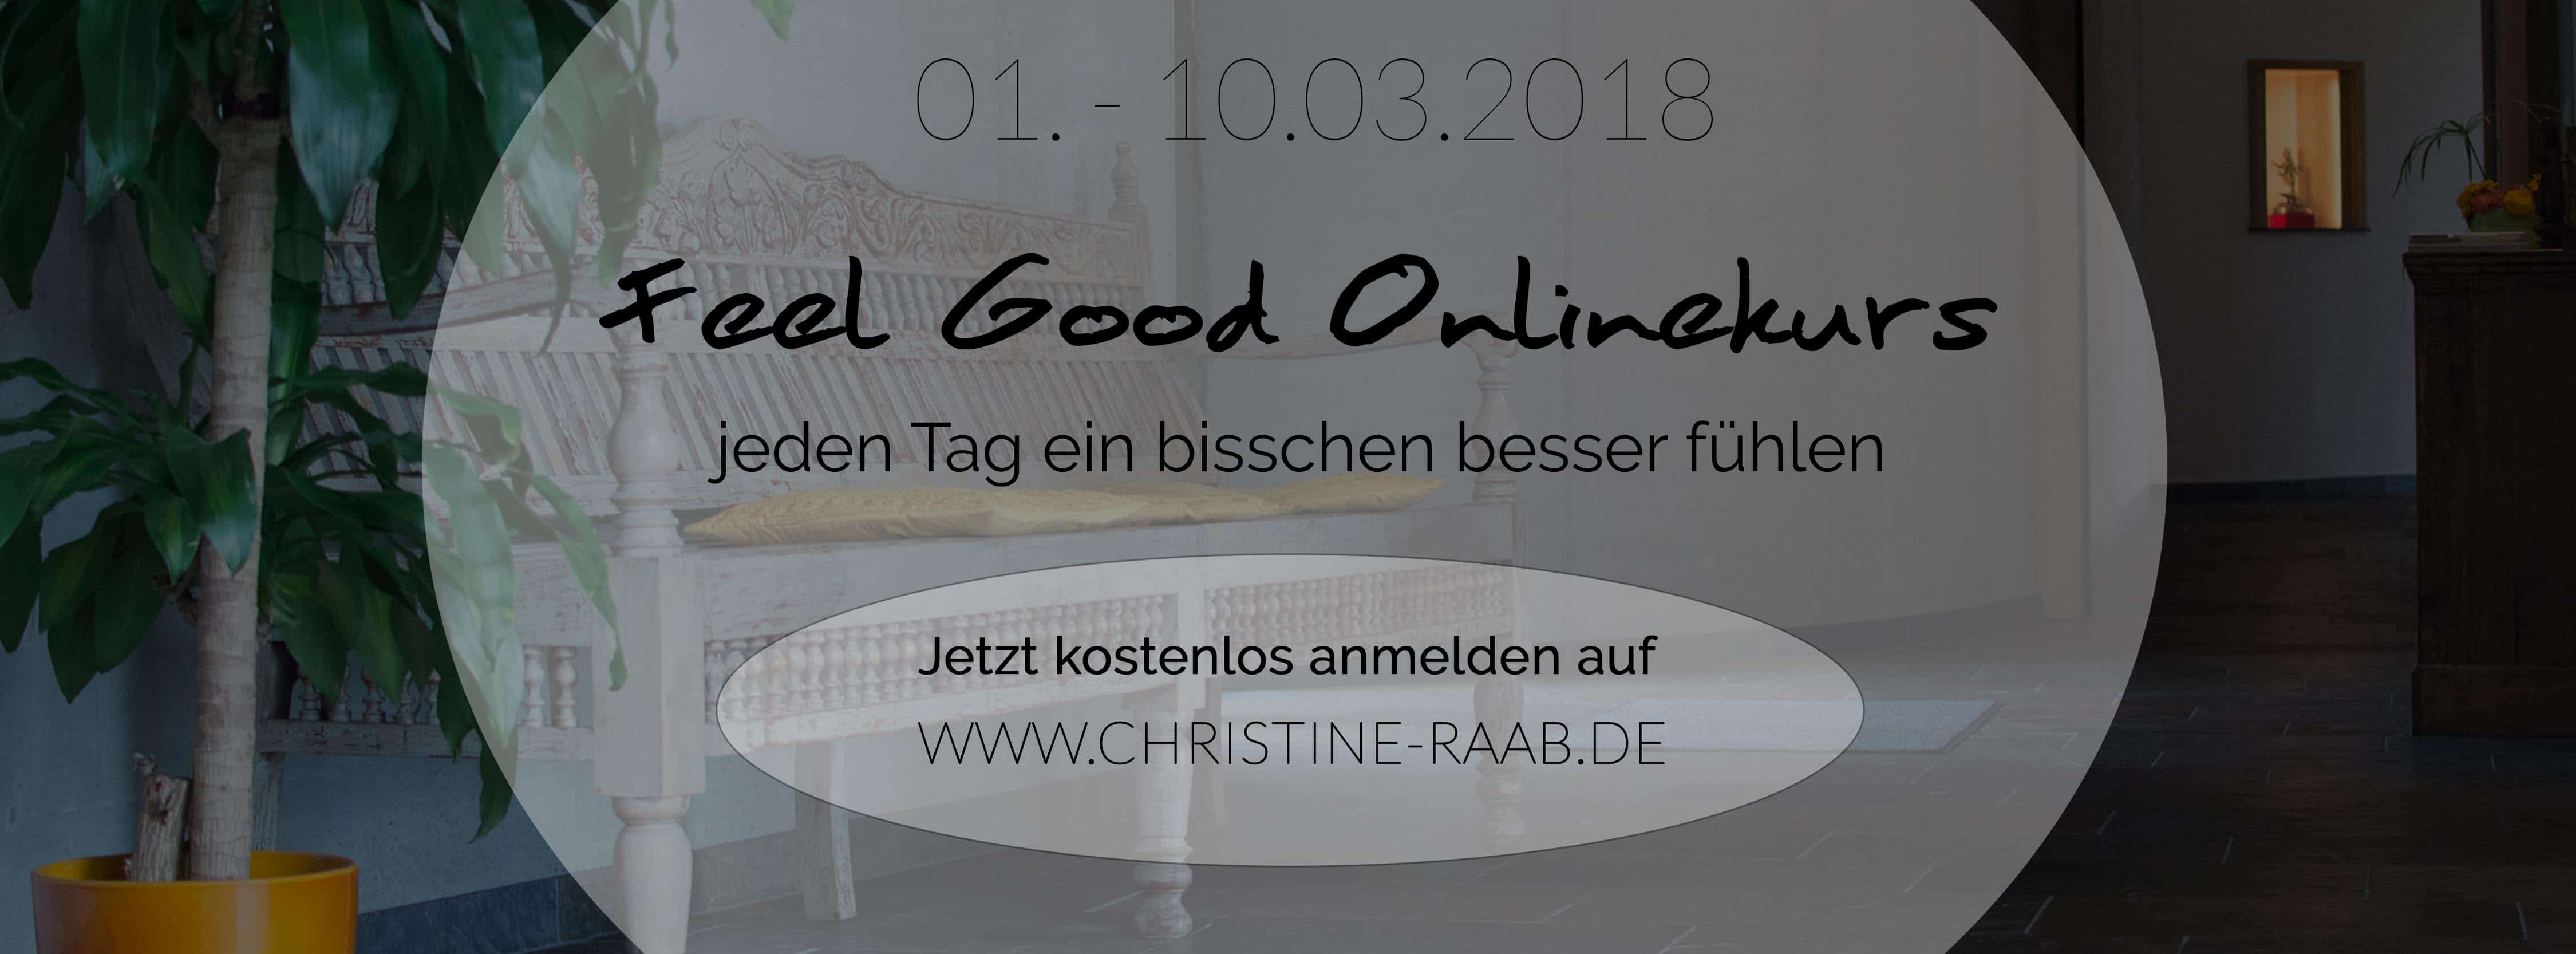 Feel Good Onlinekurs Christine Raab